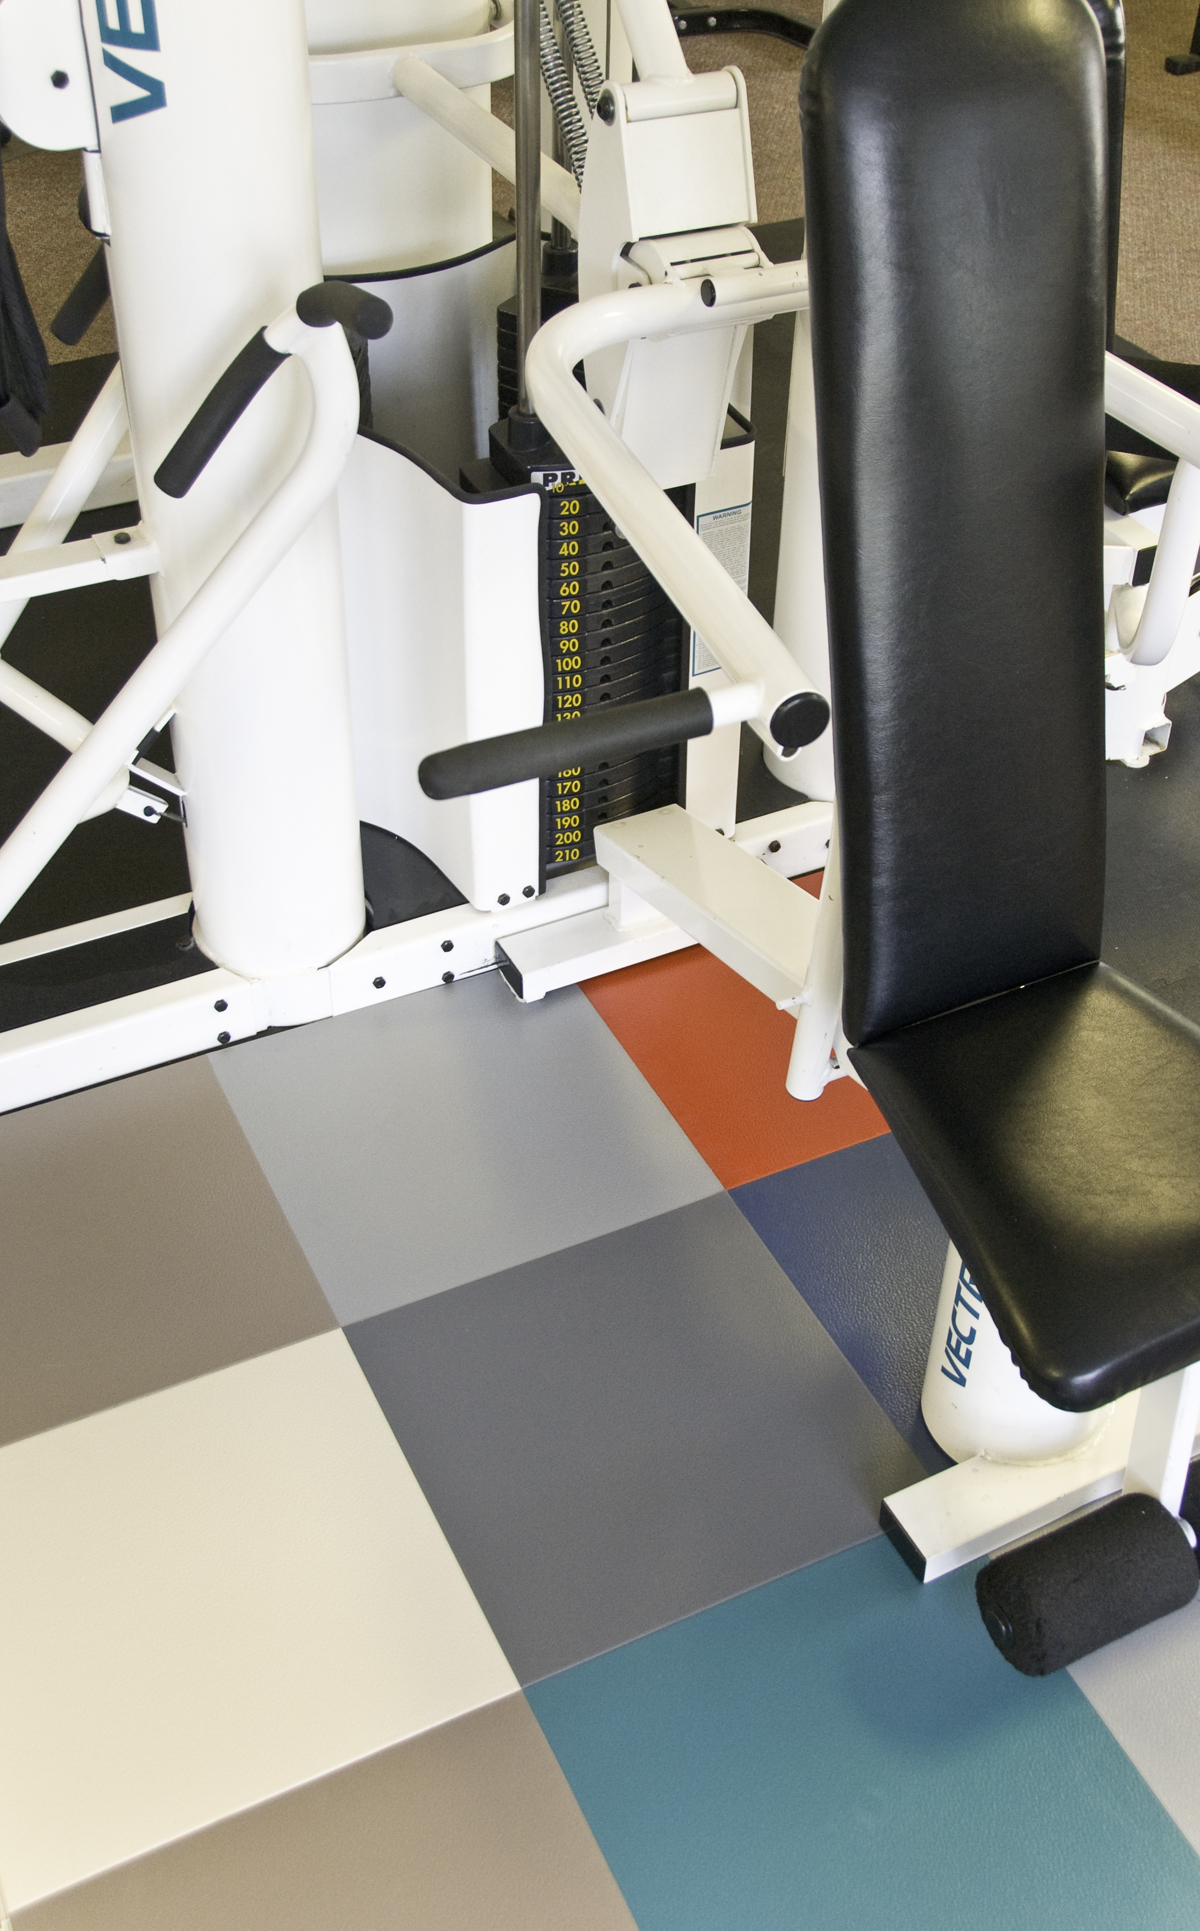 Tuff seal interlocking floor tile featured on nbcs today show tuff seal interlocking floor tile 02tuff seal interlocking floor tile used for home and commercial sports and fitness areas and facilities dailygadgetfo Gallery